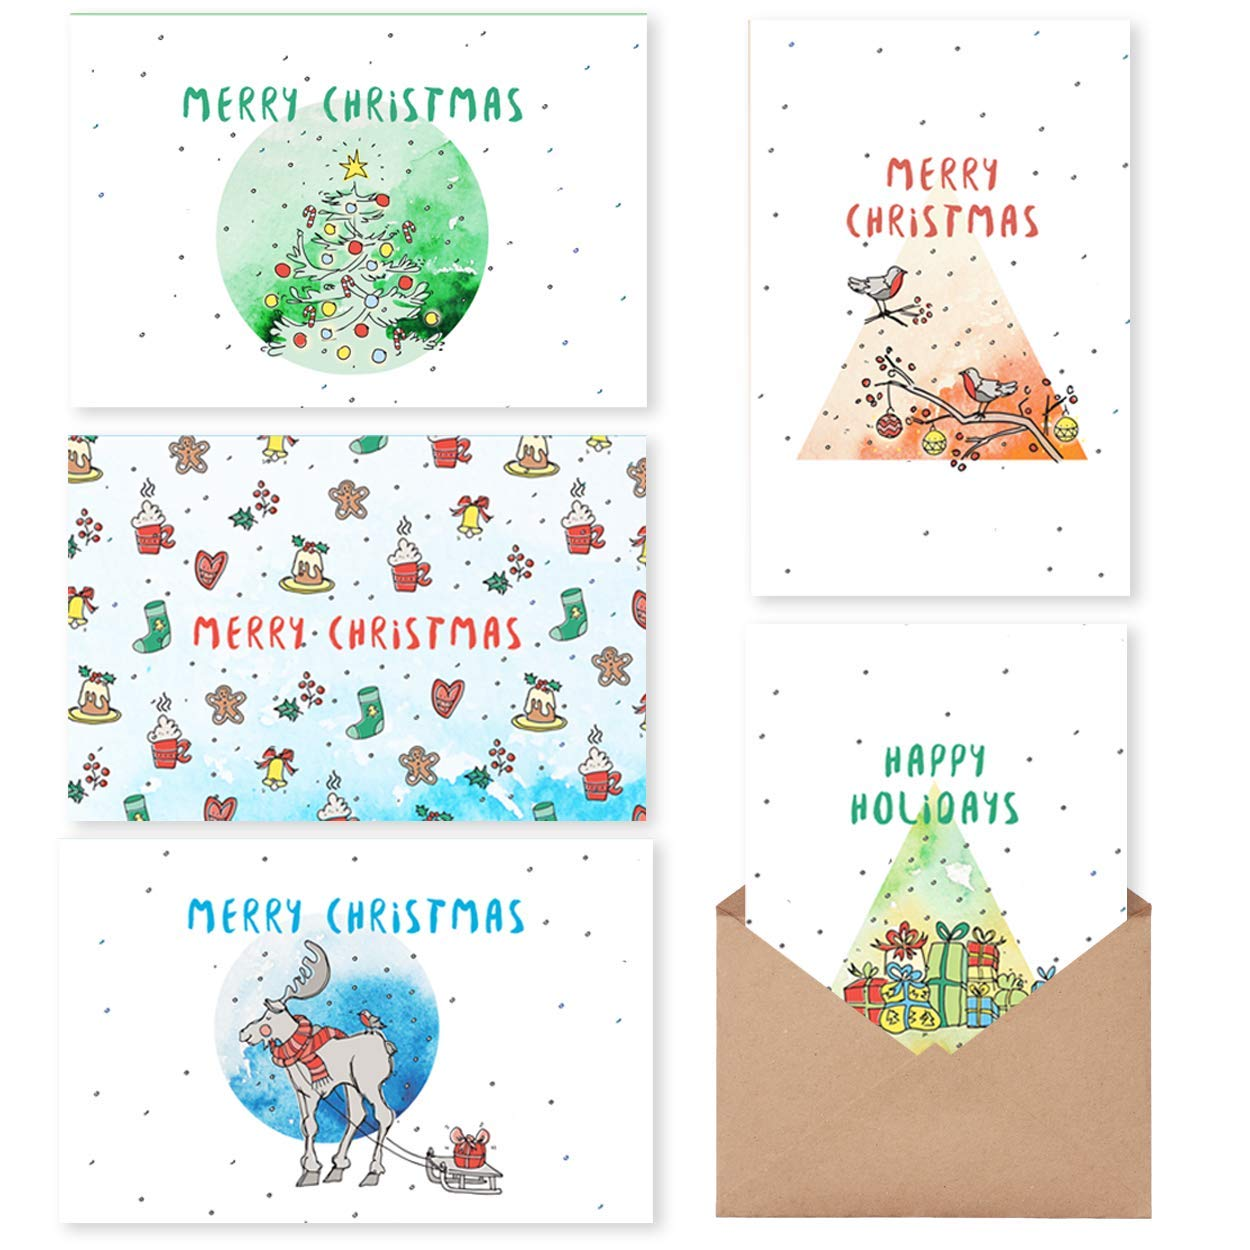 Unique Boxed Christmas Cards.Christmas Cards Boxed Holiday Cards With Message Inside 30 Adorable Xmas Cards With Gummed Kraft Envelopes 6 Unique Designs